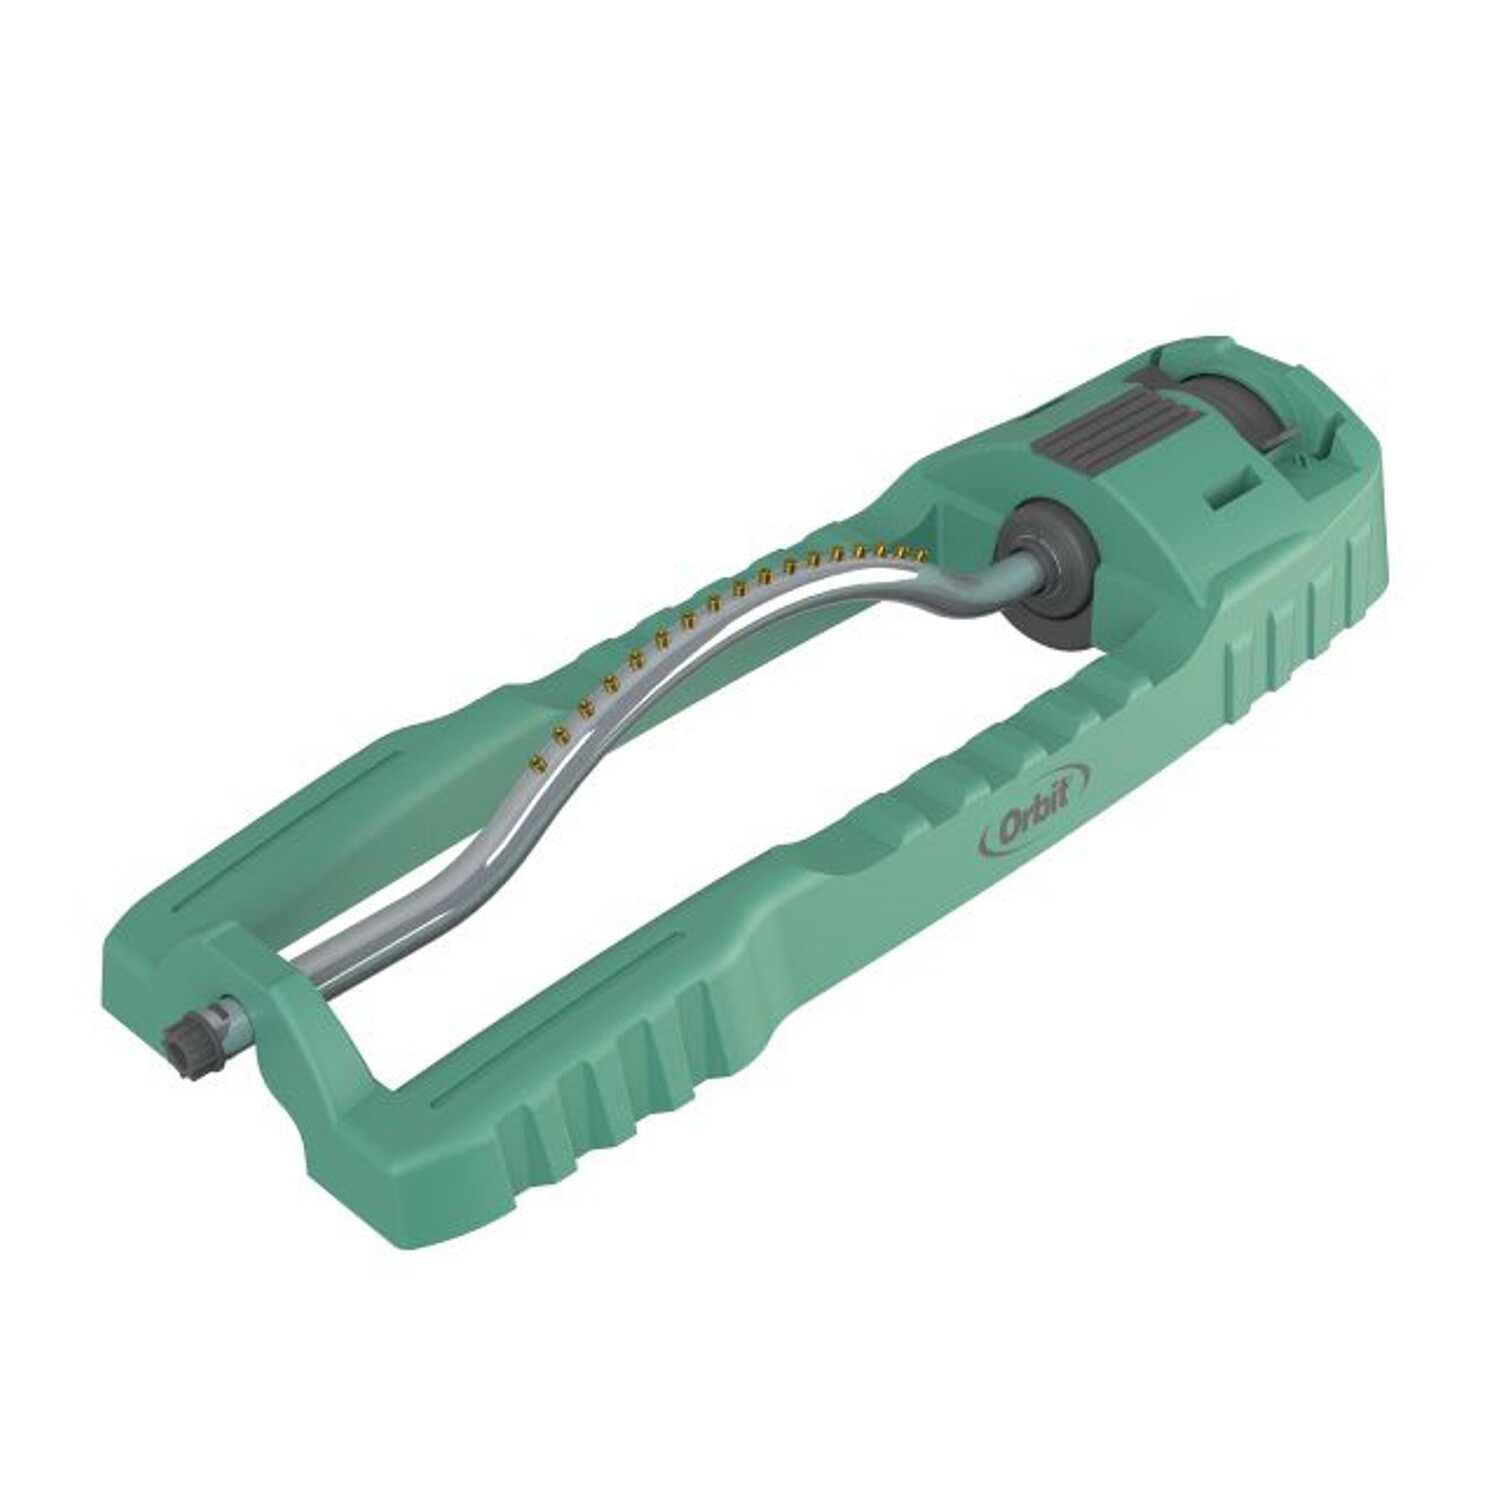 Orbit  Plastic  Non-tipping Base  Oscillating Sprinkler  3600 sq. ft.